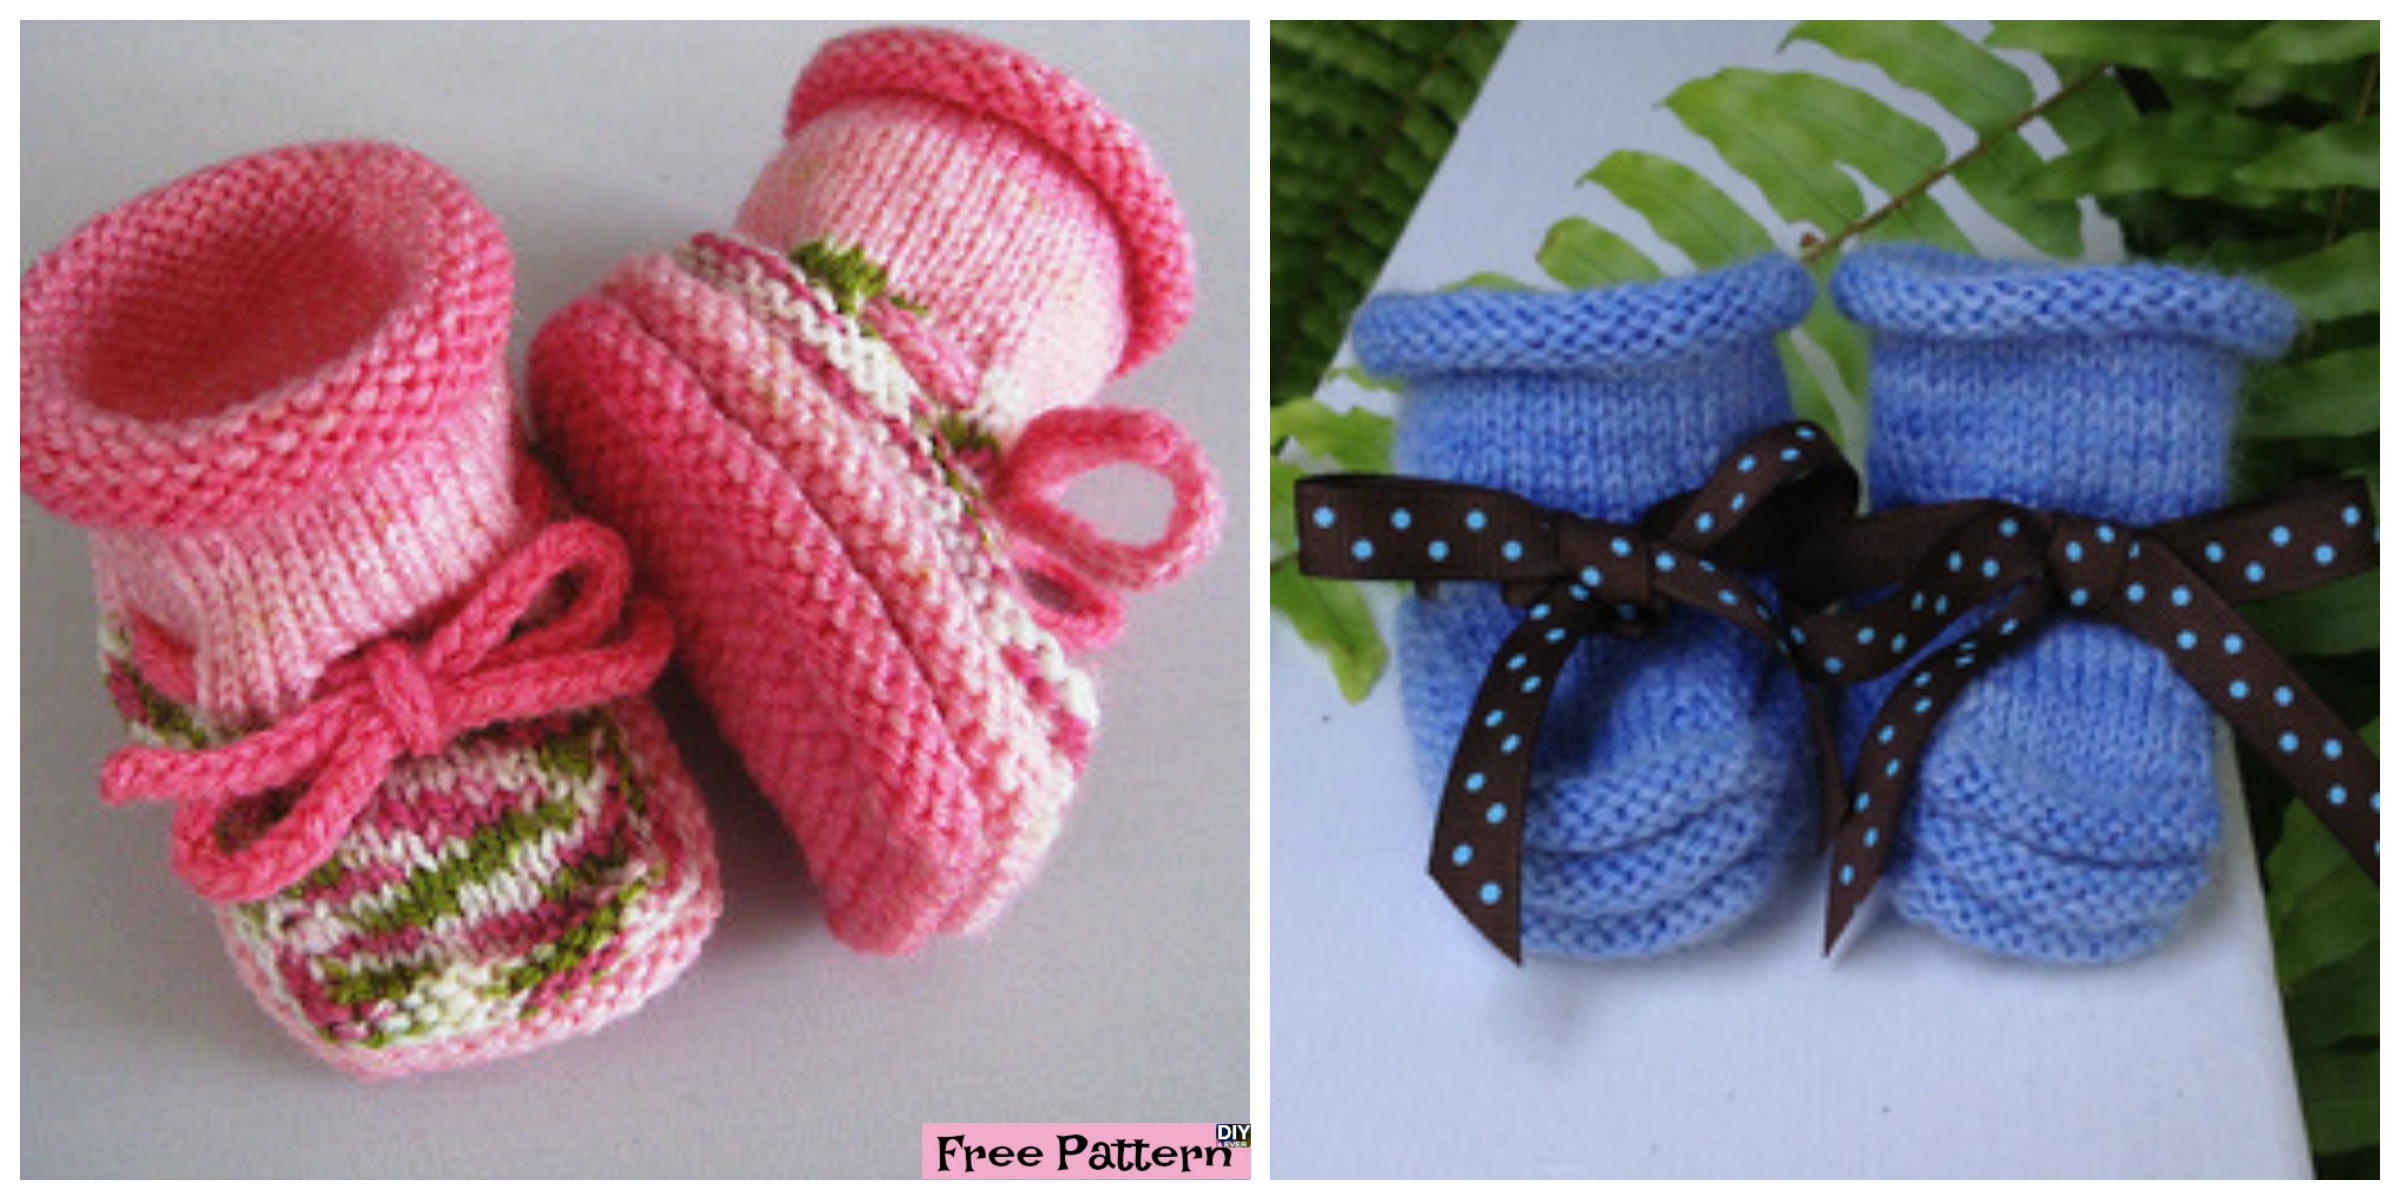 Stay-On Knitted Baby Booties – Free Pattern